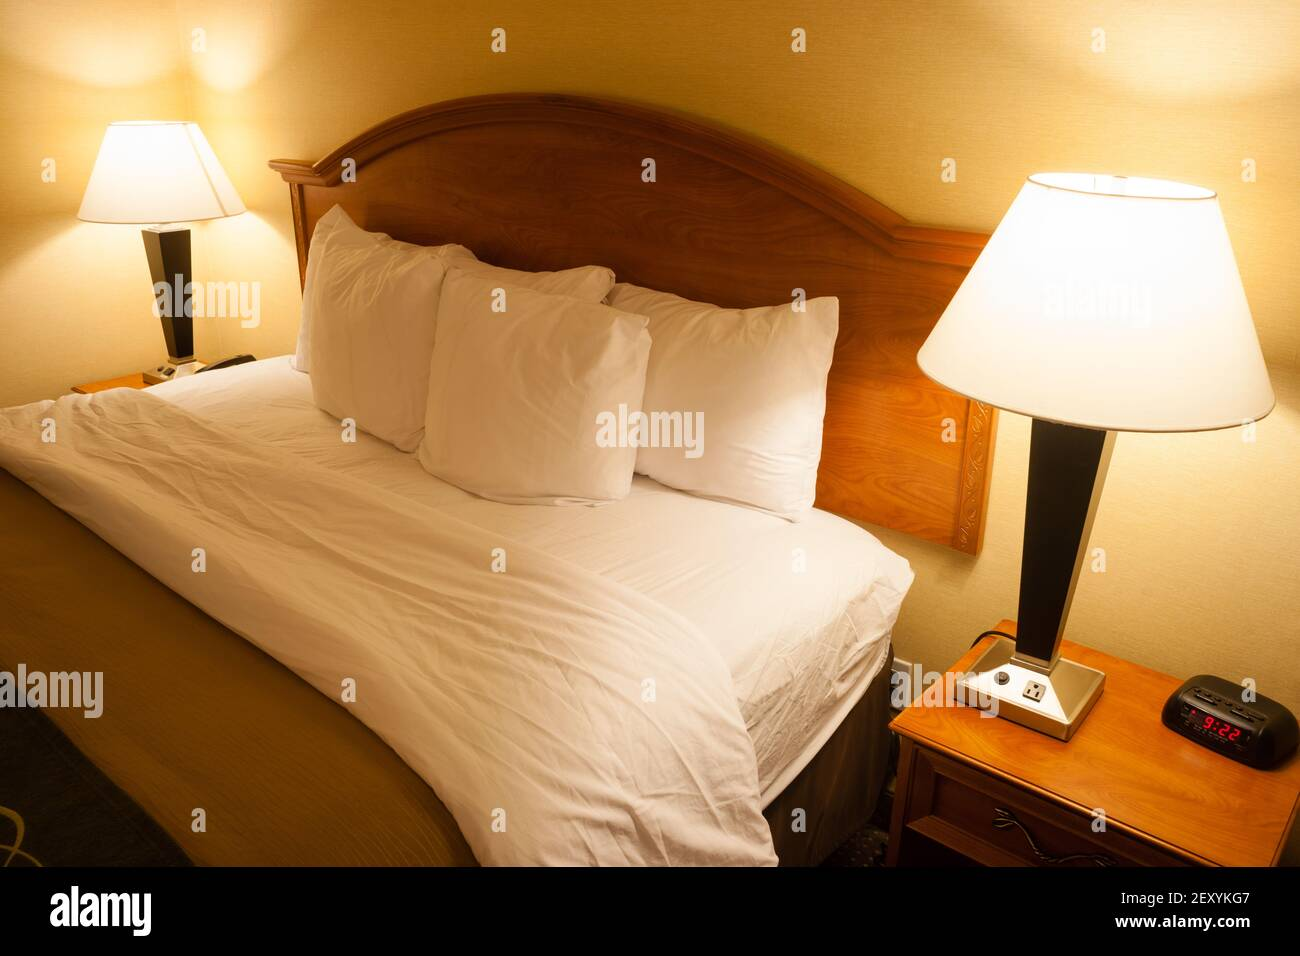 Bedside Lamps High Resolution Stock Photography And Images Alamy